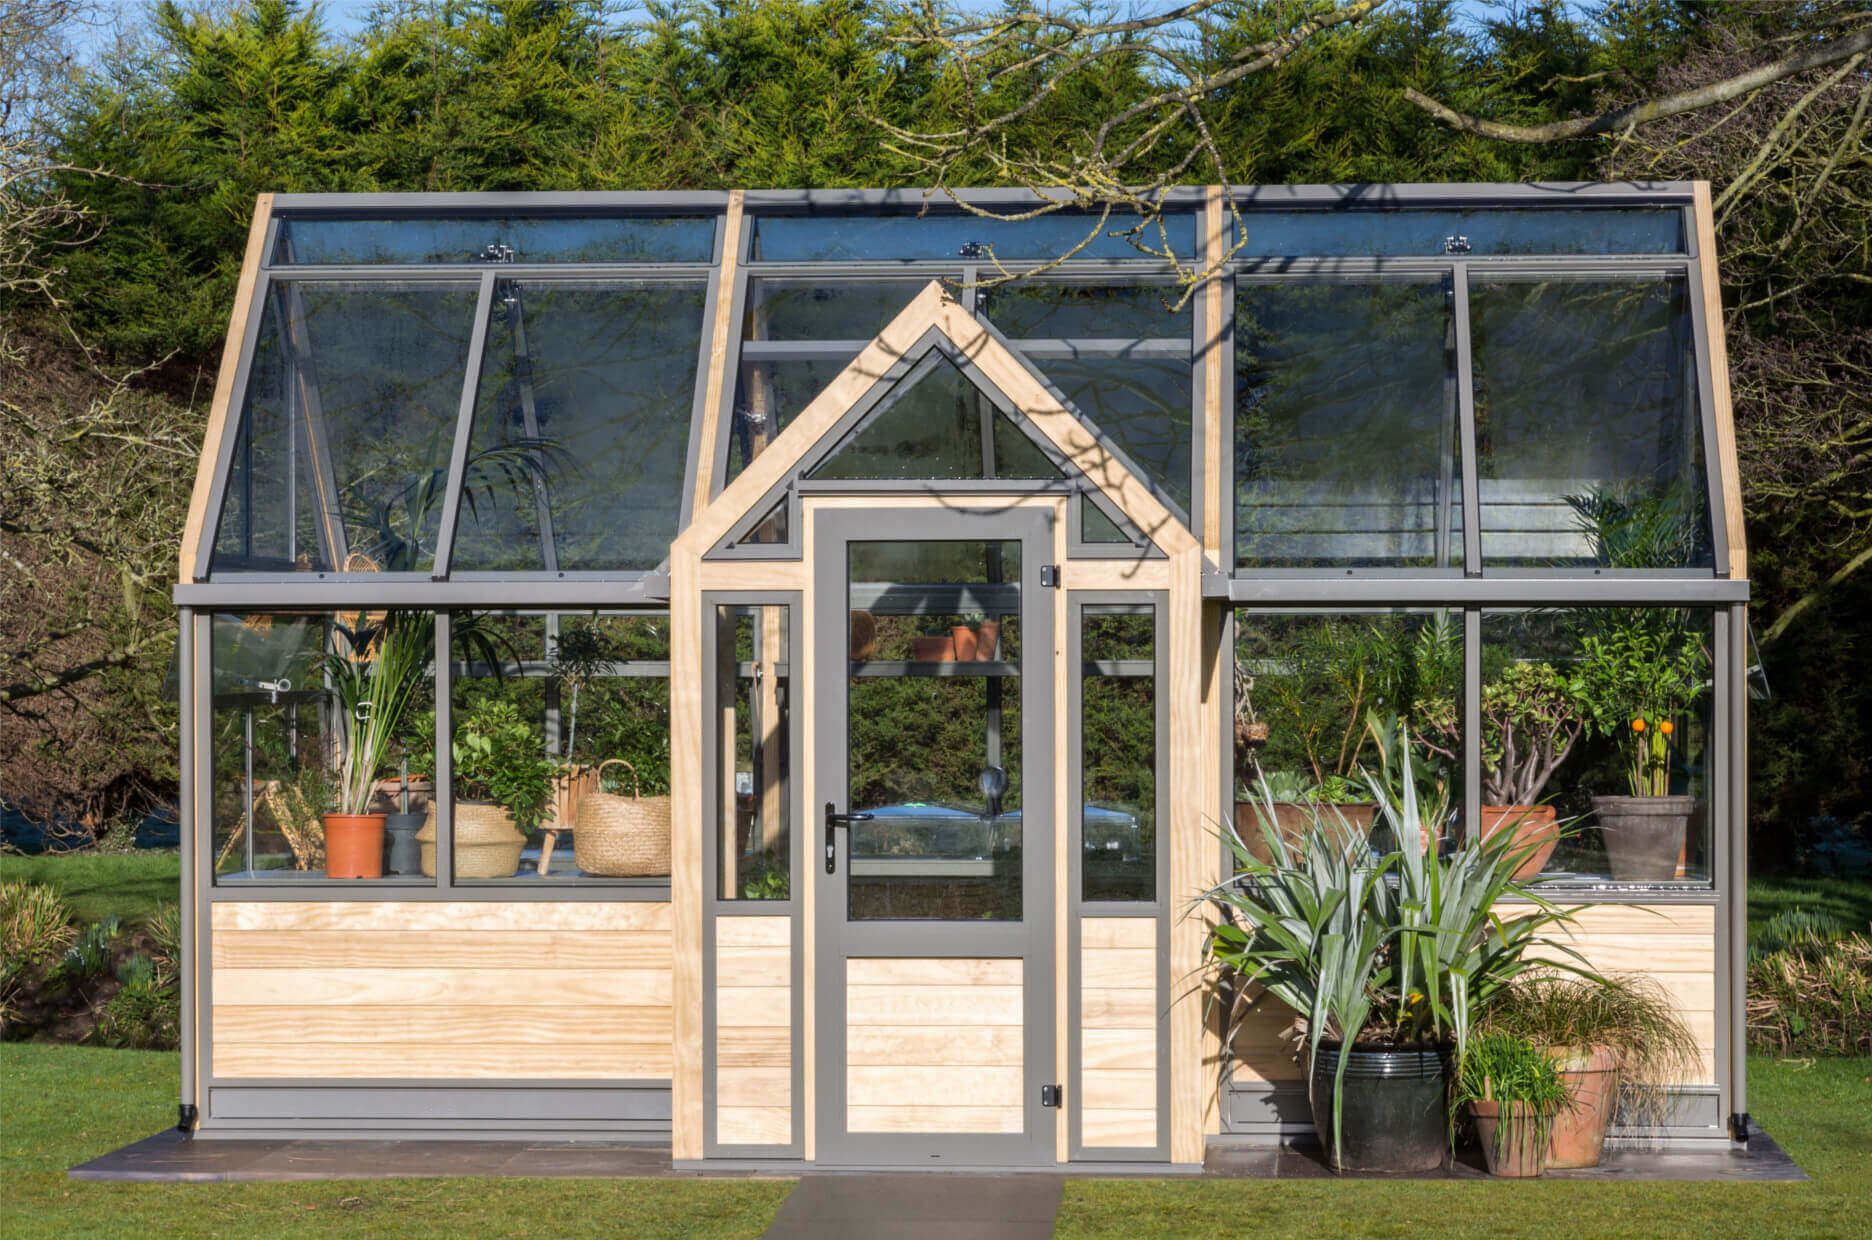 Attractive wooden greenhouse with central porch